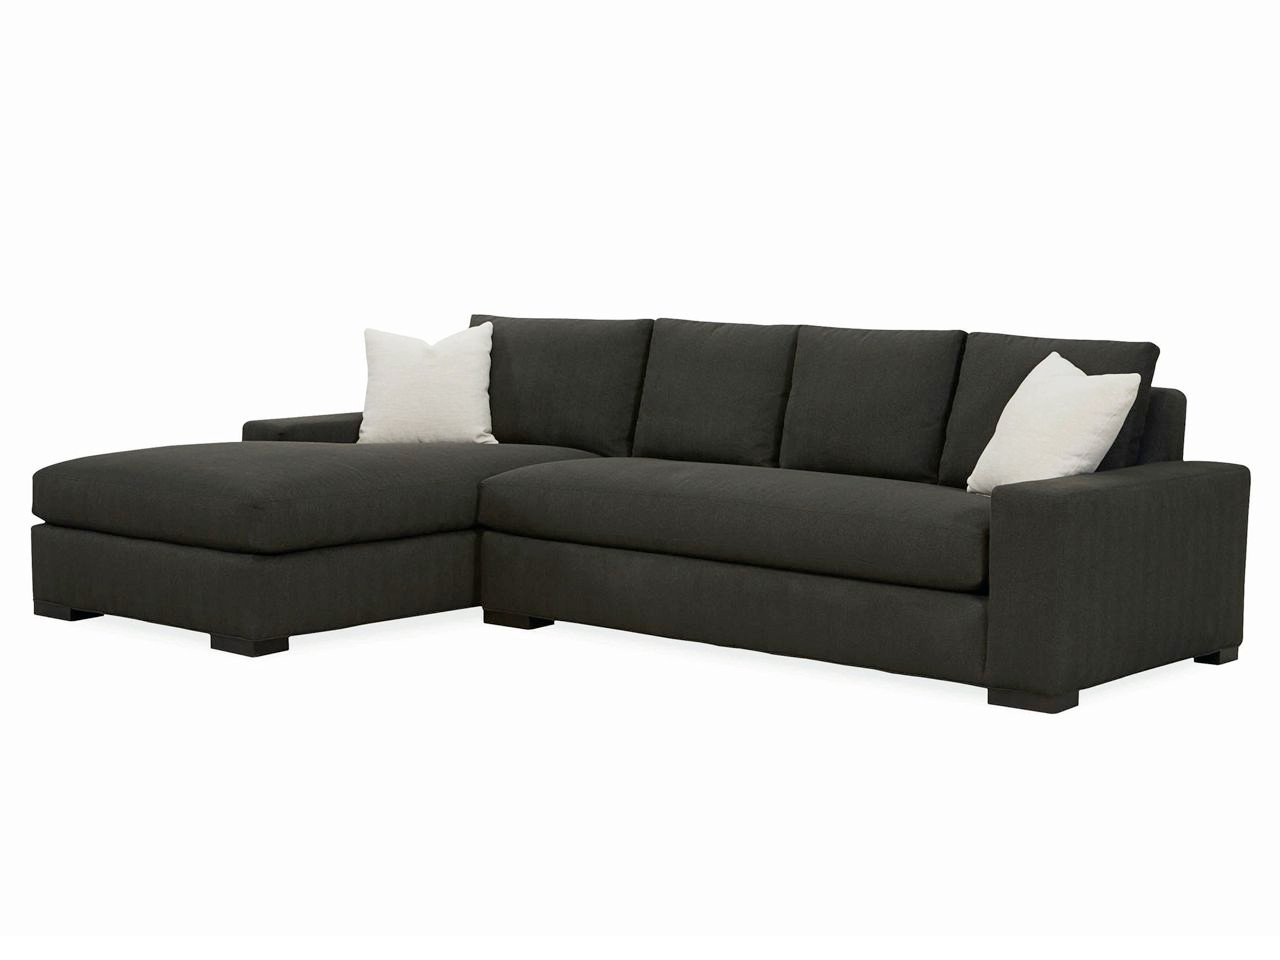 Groovy Dayton Sectional Series Upholstered Sectionals Sofas Ibusinesslaw Wood Chair Design Ideas Ibusinesslaworg